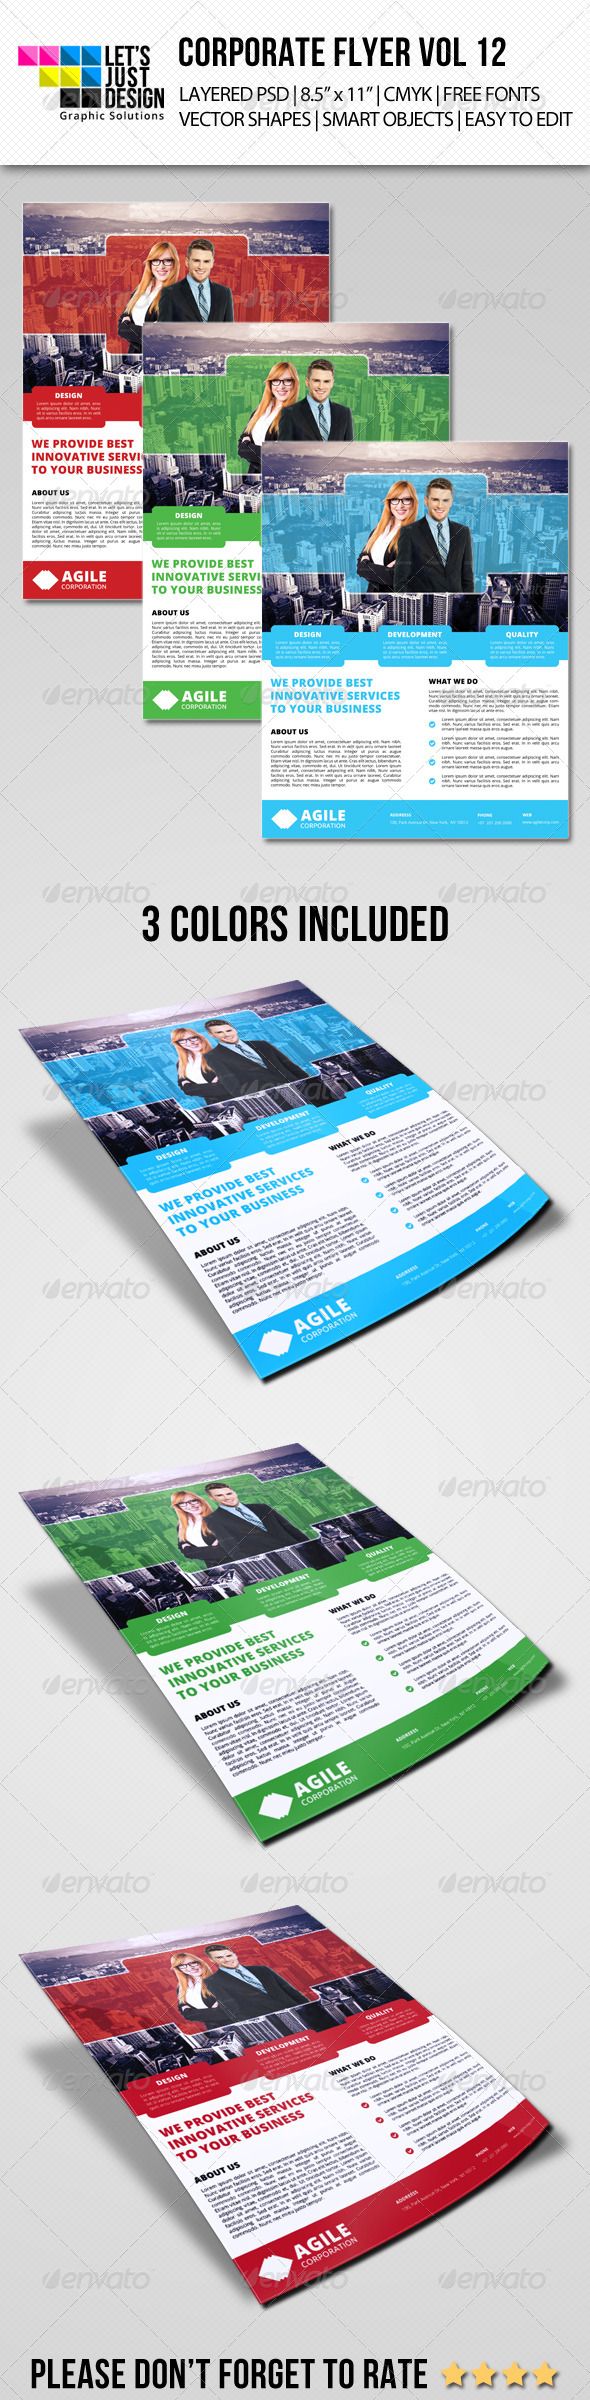 GraphicRiver Corporate Flyer Template Vol 12 7354368